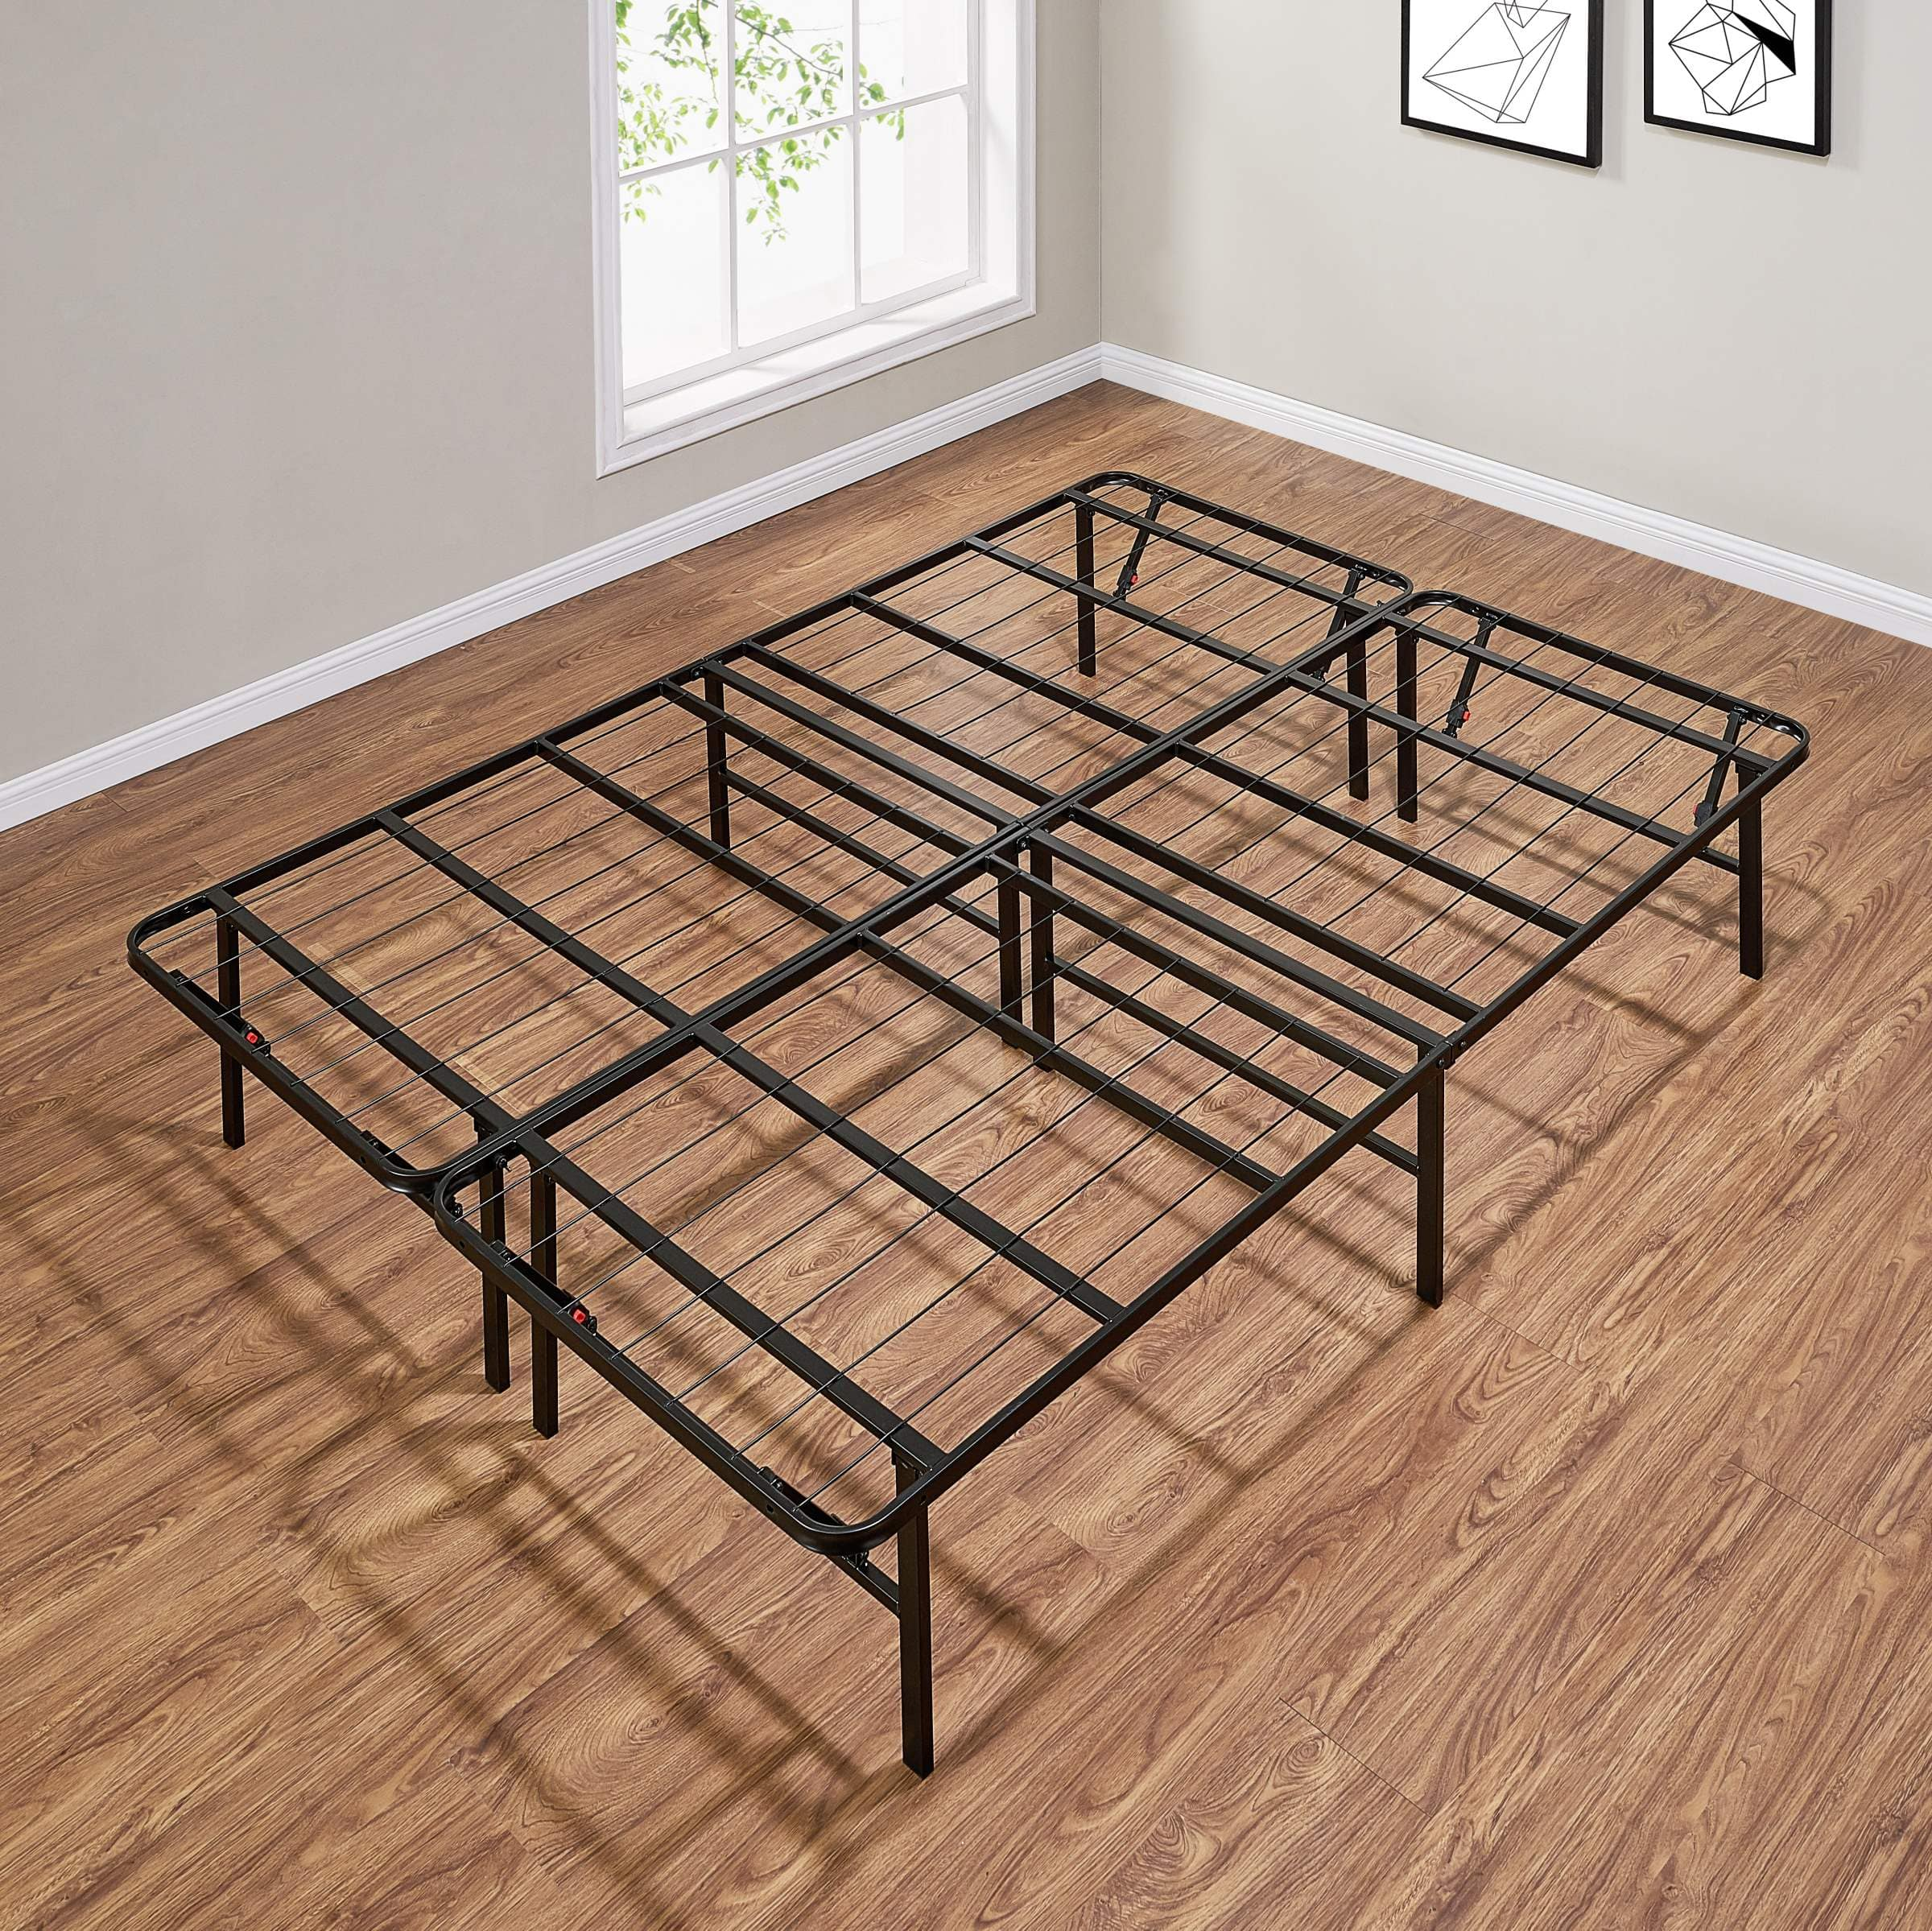 Mainstays High Profile Foldable Steel Bed Frame, Powder-coated Steel $50